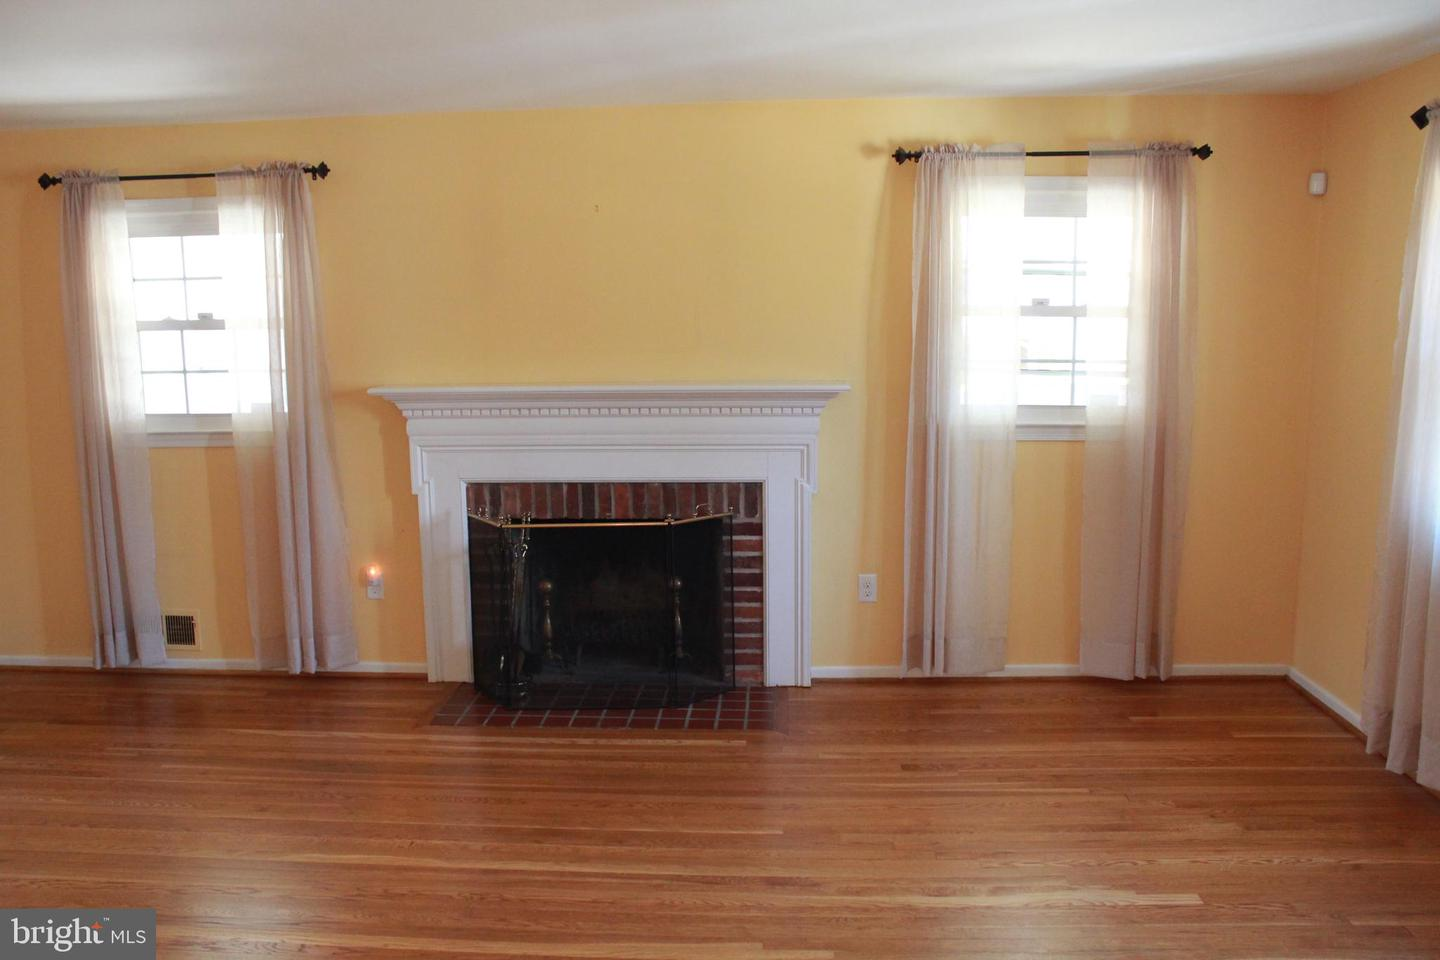 Additional photo for property listing at 9005 Cherrytree Dr 9005 Cherrytree Dr Alexandria, Virginia 22309 United States